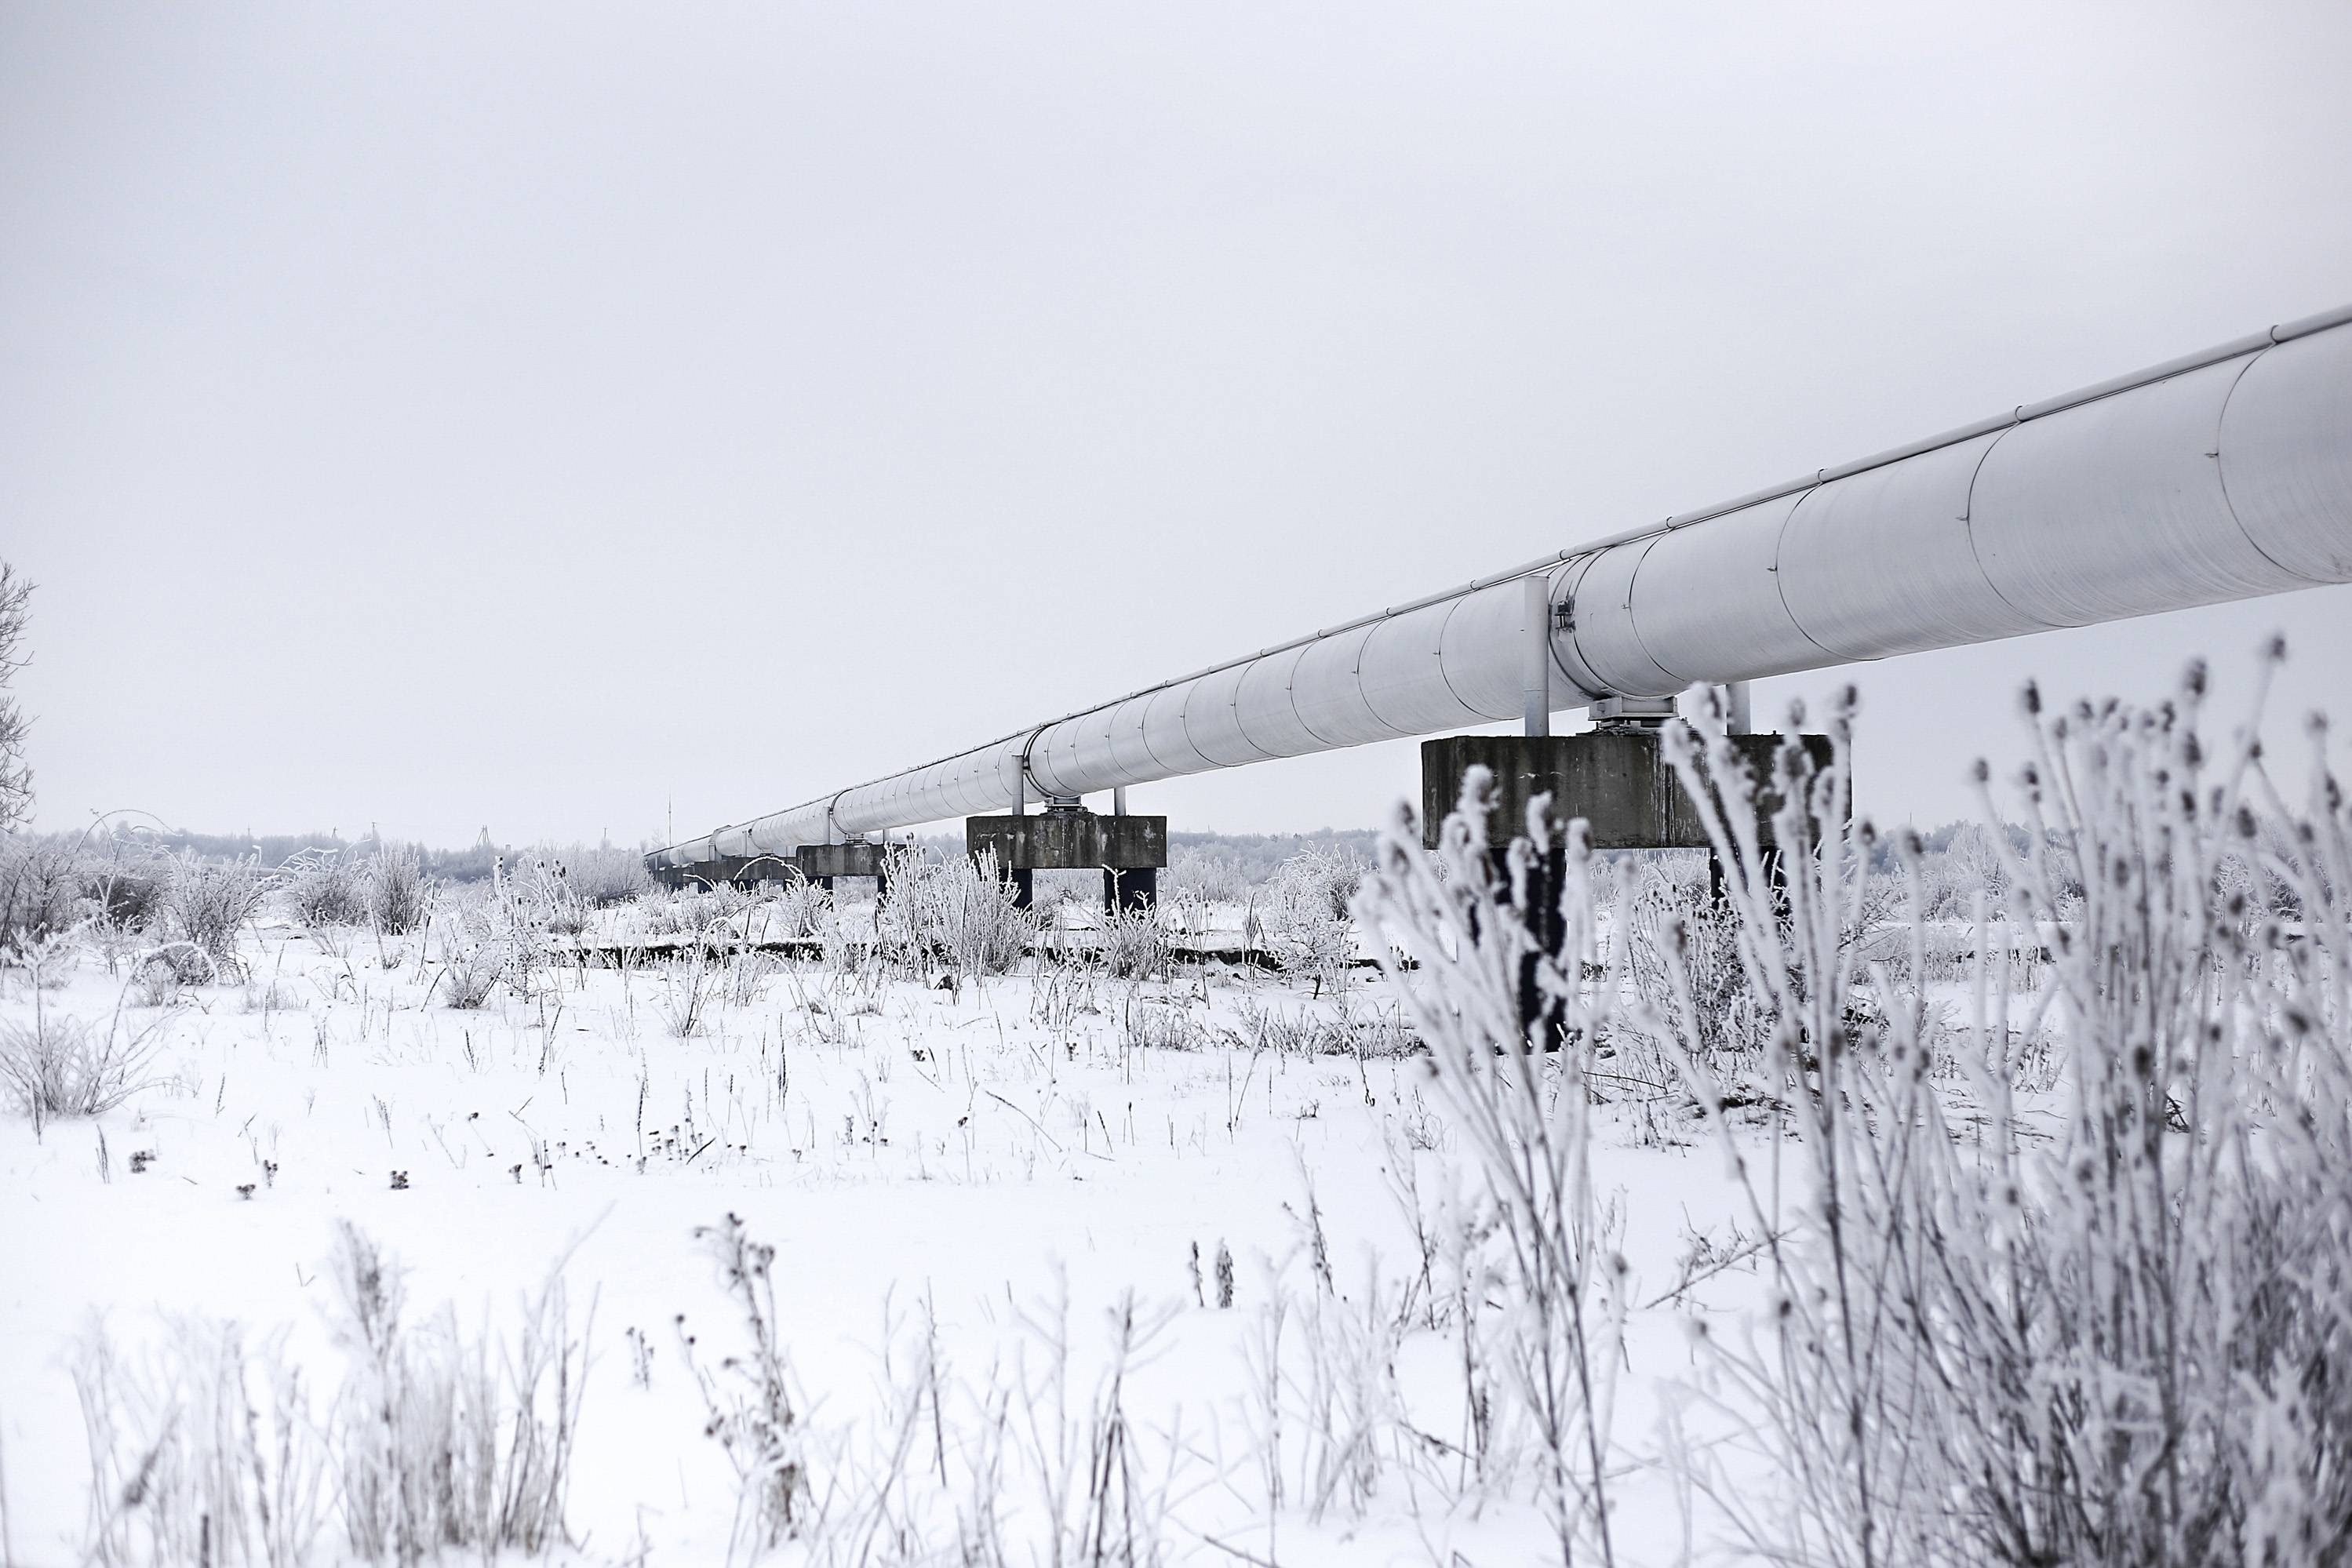 A section of the Urengoy-Pomary-Uzhgorod pipeline, also known as the West-Siberian Pipeline, or the Trans-Siberian Pipeline -- Russia's main natural gas export pipeline -- stands near Ivano-Frankvisk, Ukraine.